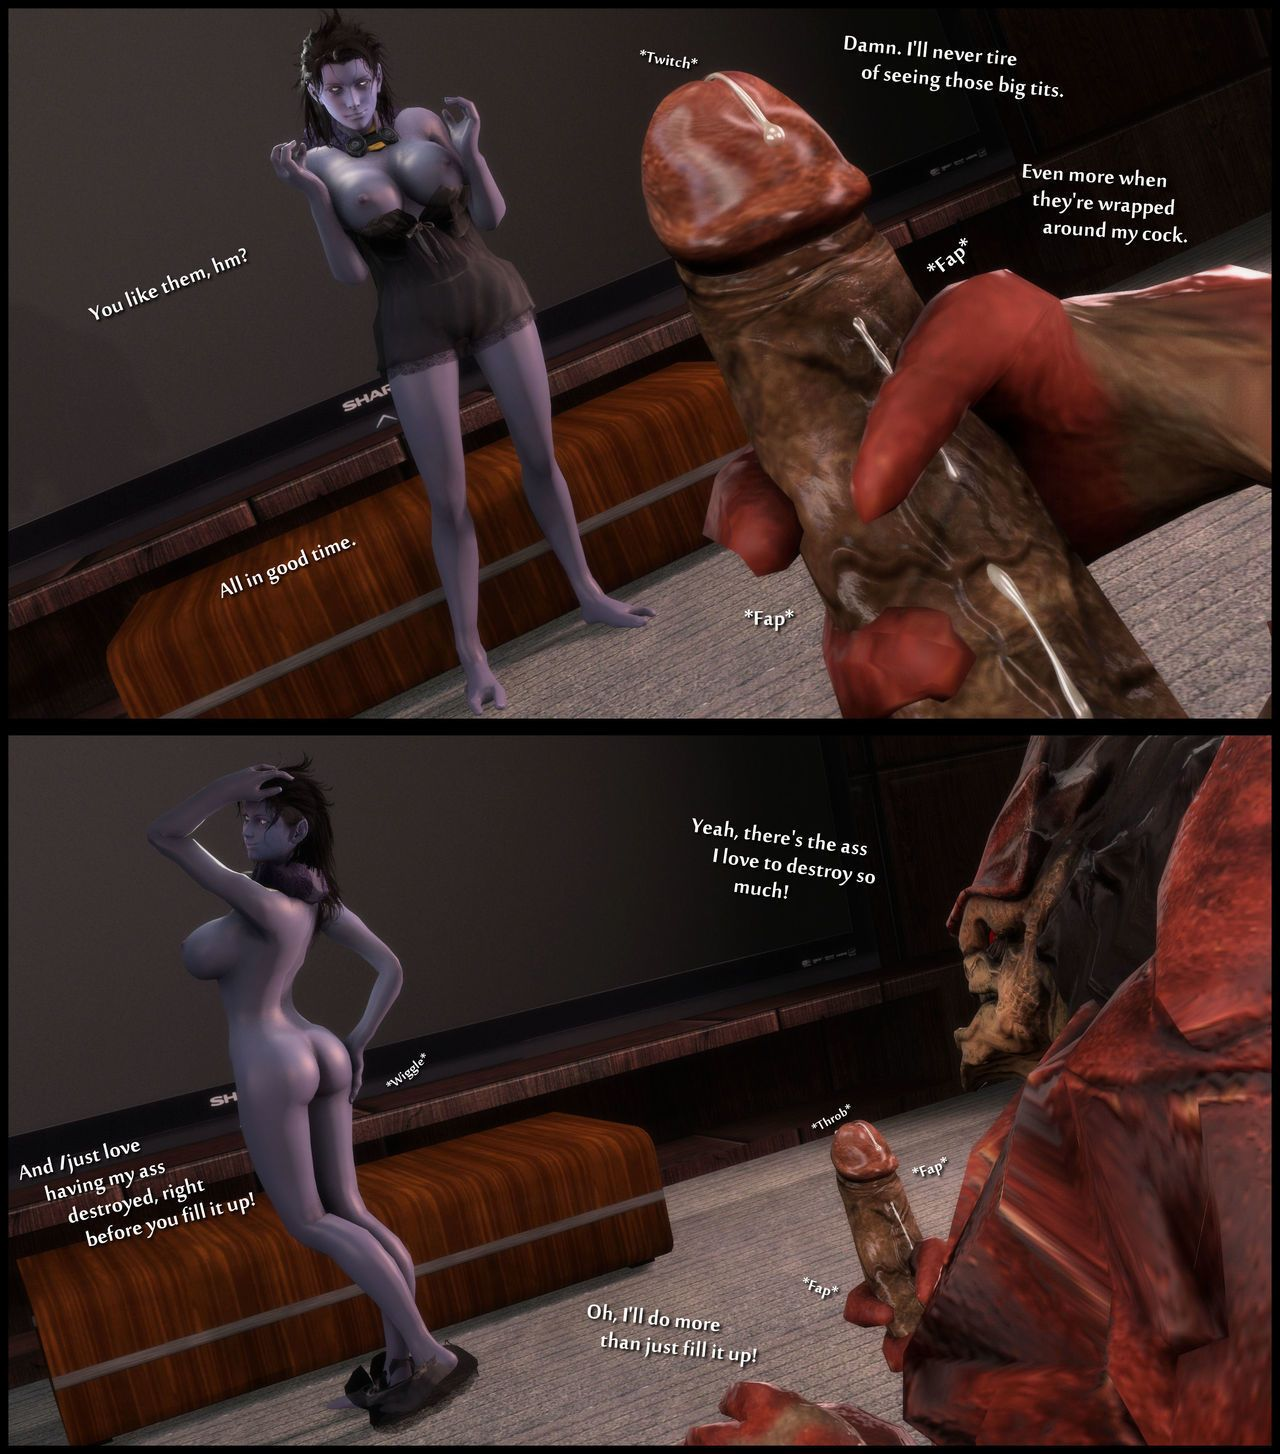 [foab30] Size Queen (Mass Effect)